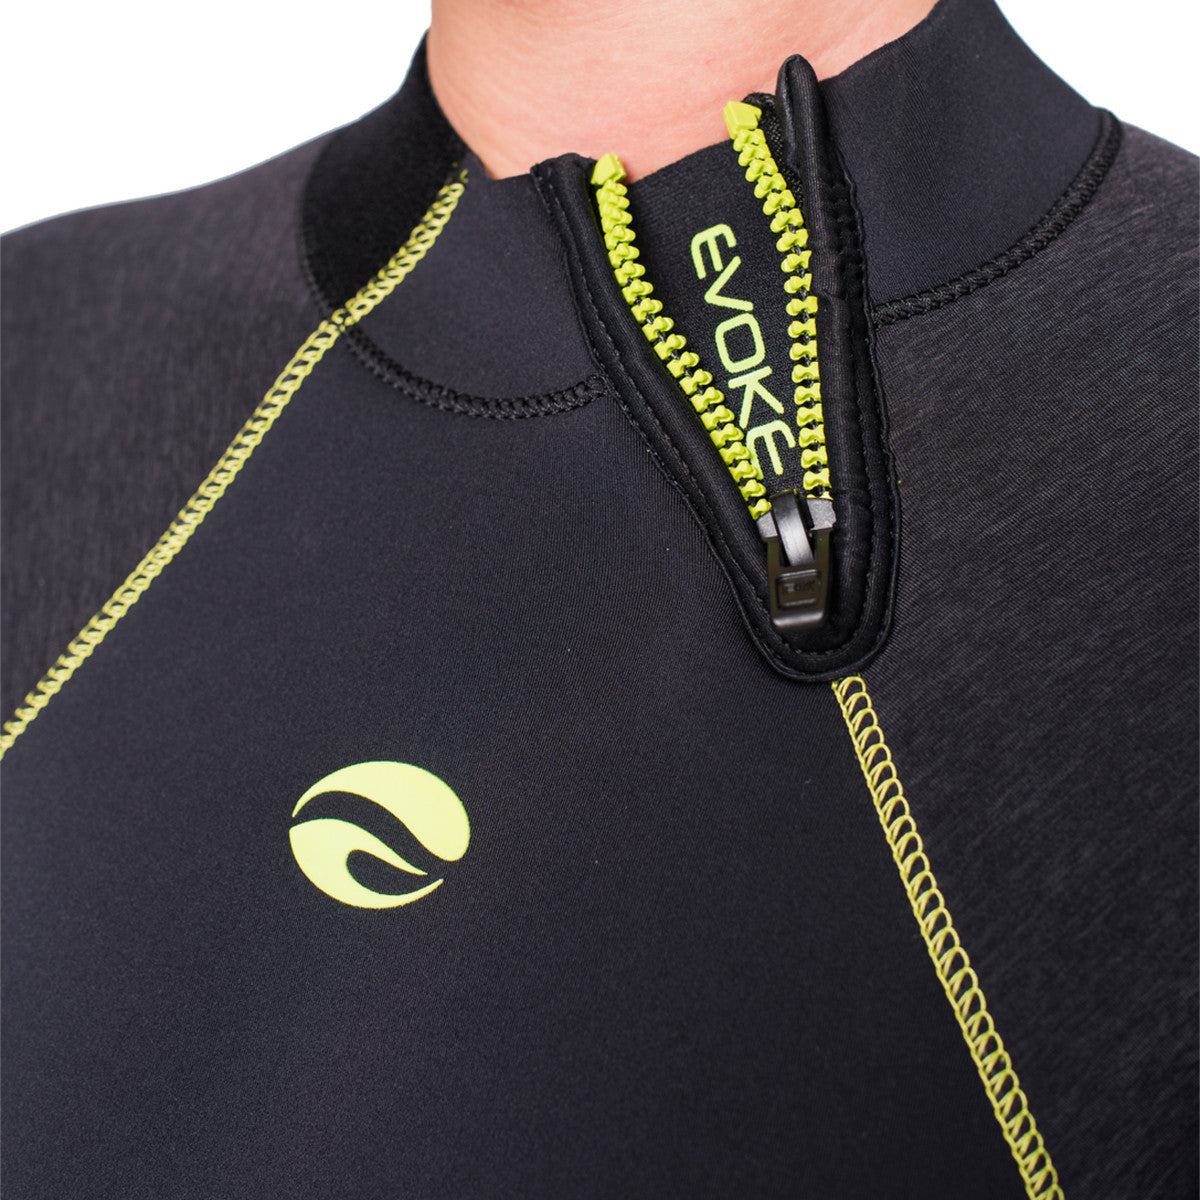 Bare Evoke 5mm Wetsuit: Womens - Oyster Diving Shop - 3